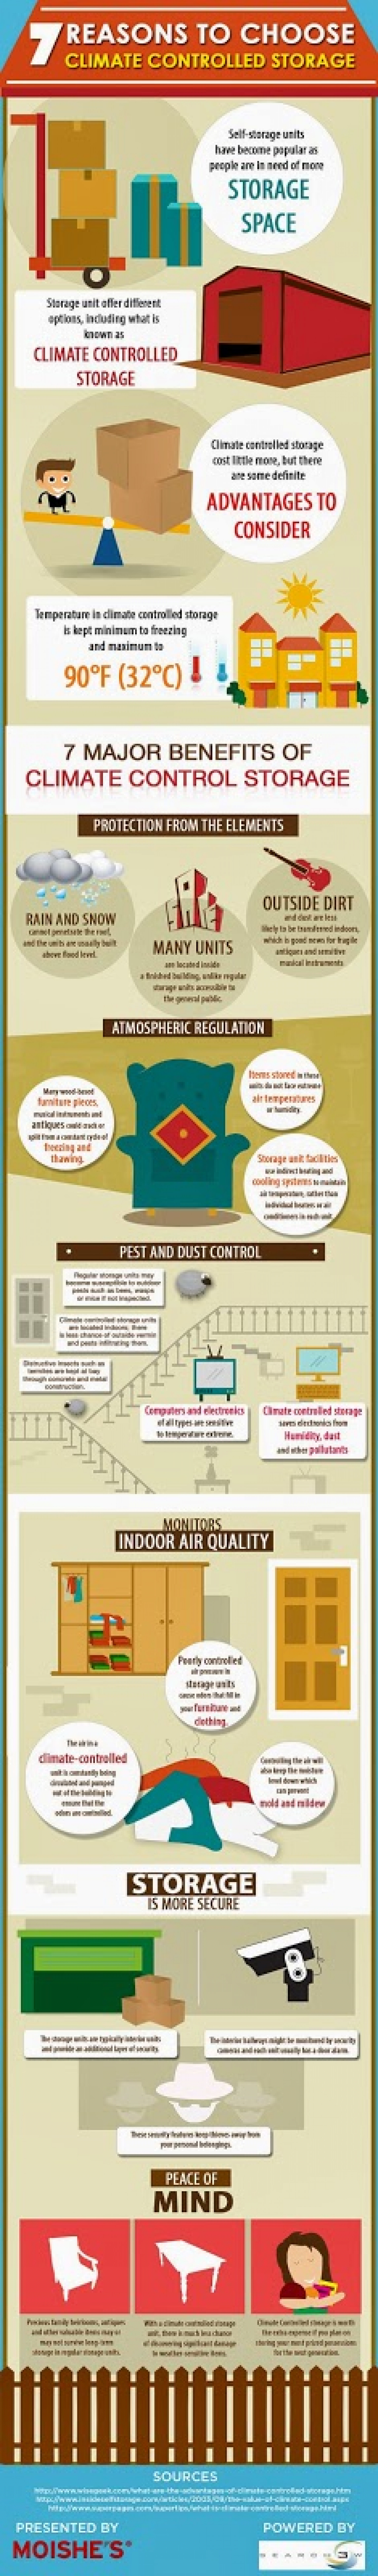 7 Reasons To Choose Climate Controlled Storage Infographic